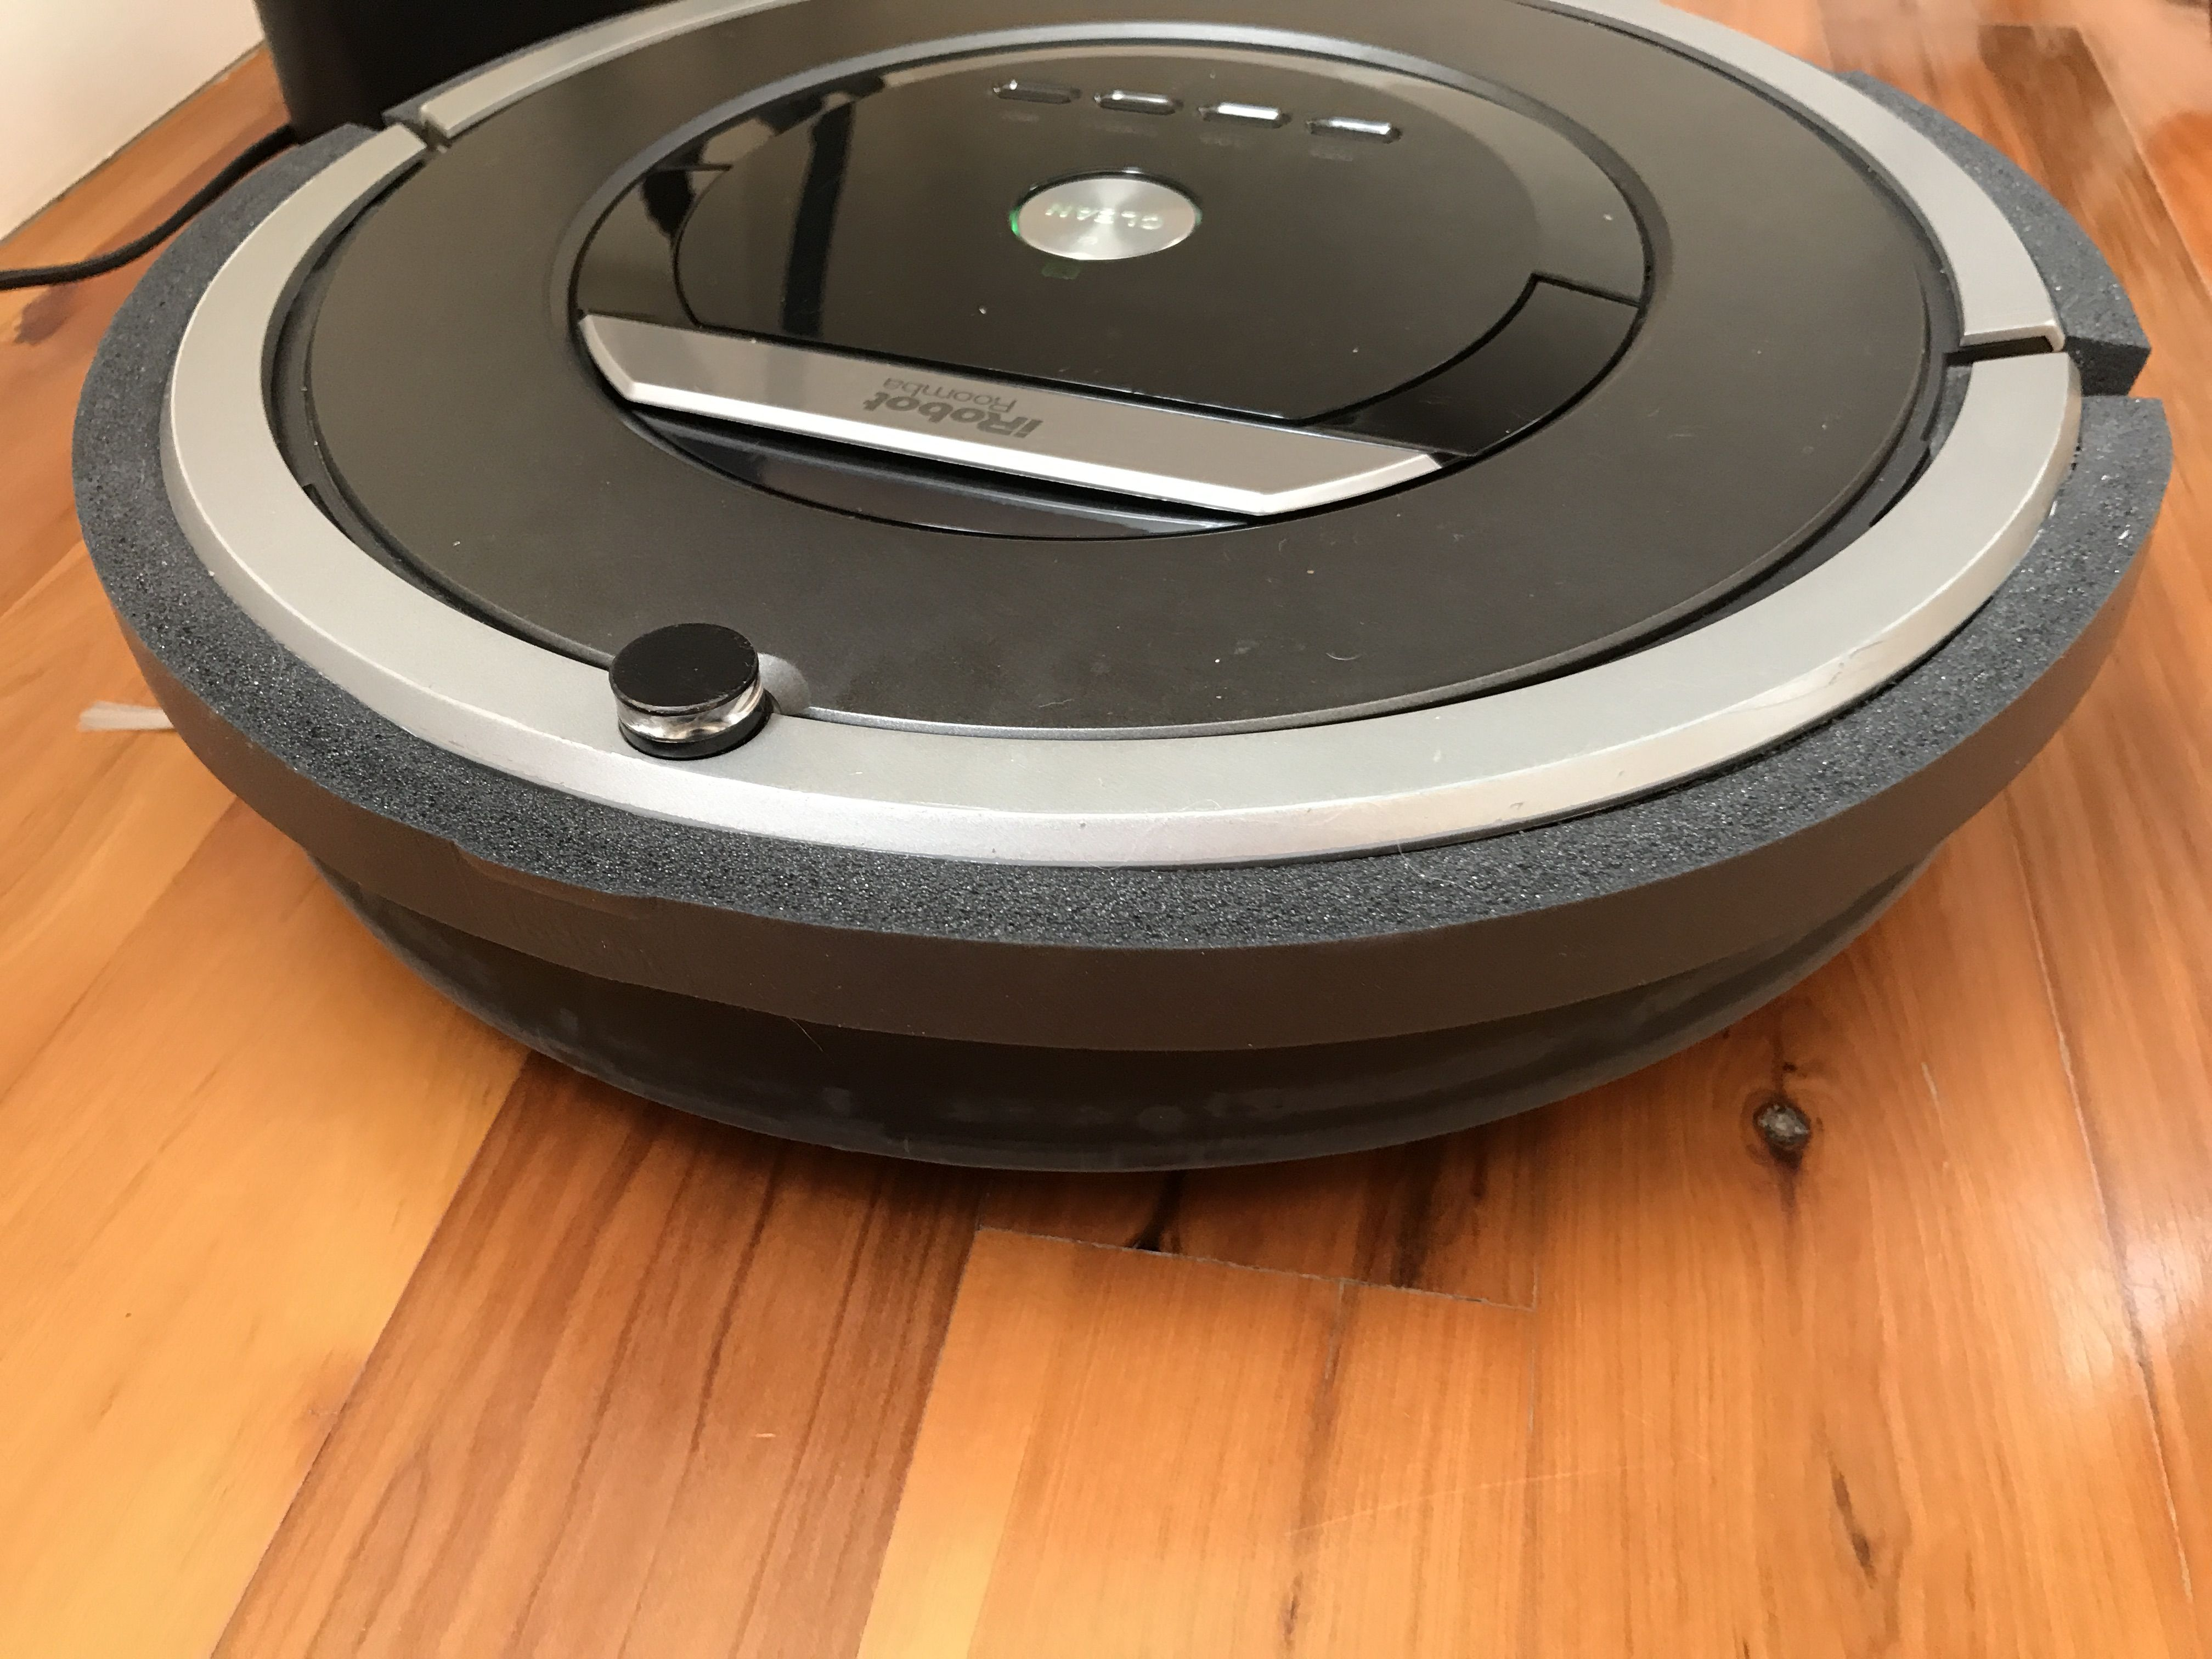 Roomba Bumper Hack I used Duck weather stripping. $4.00 from Amazon. Works great. No more marks in furniture and Roomba is so quiet now.